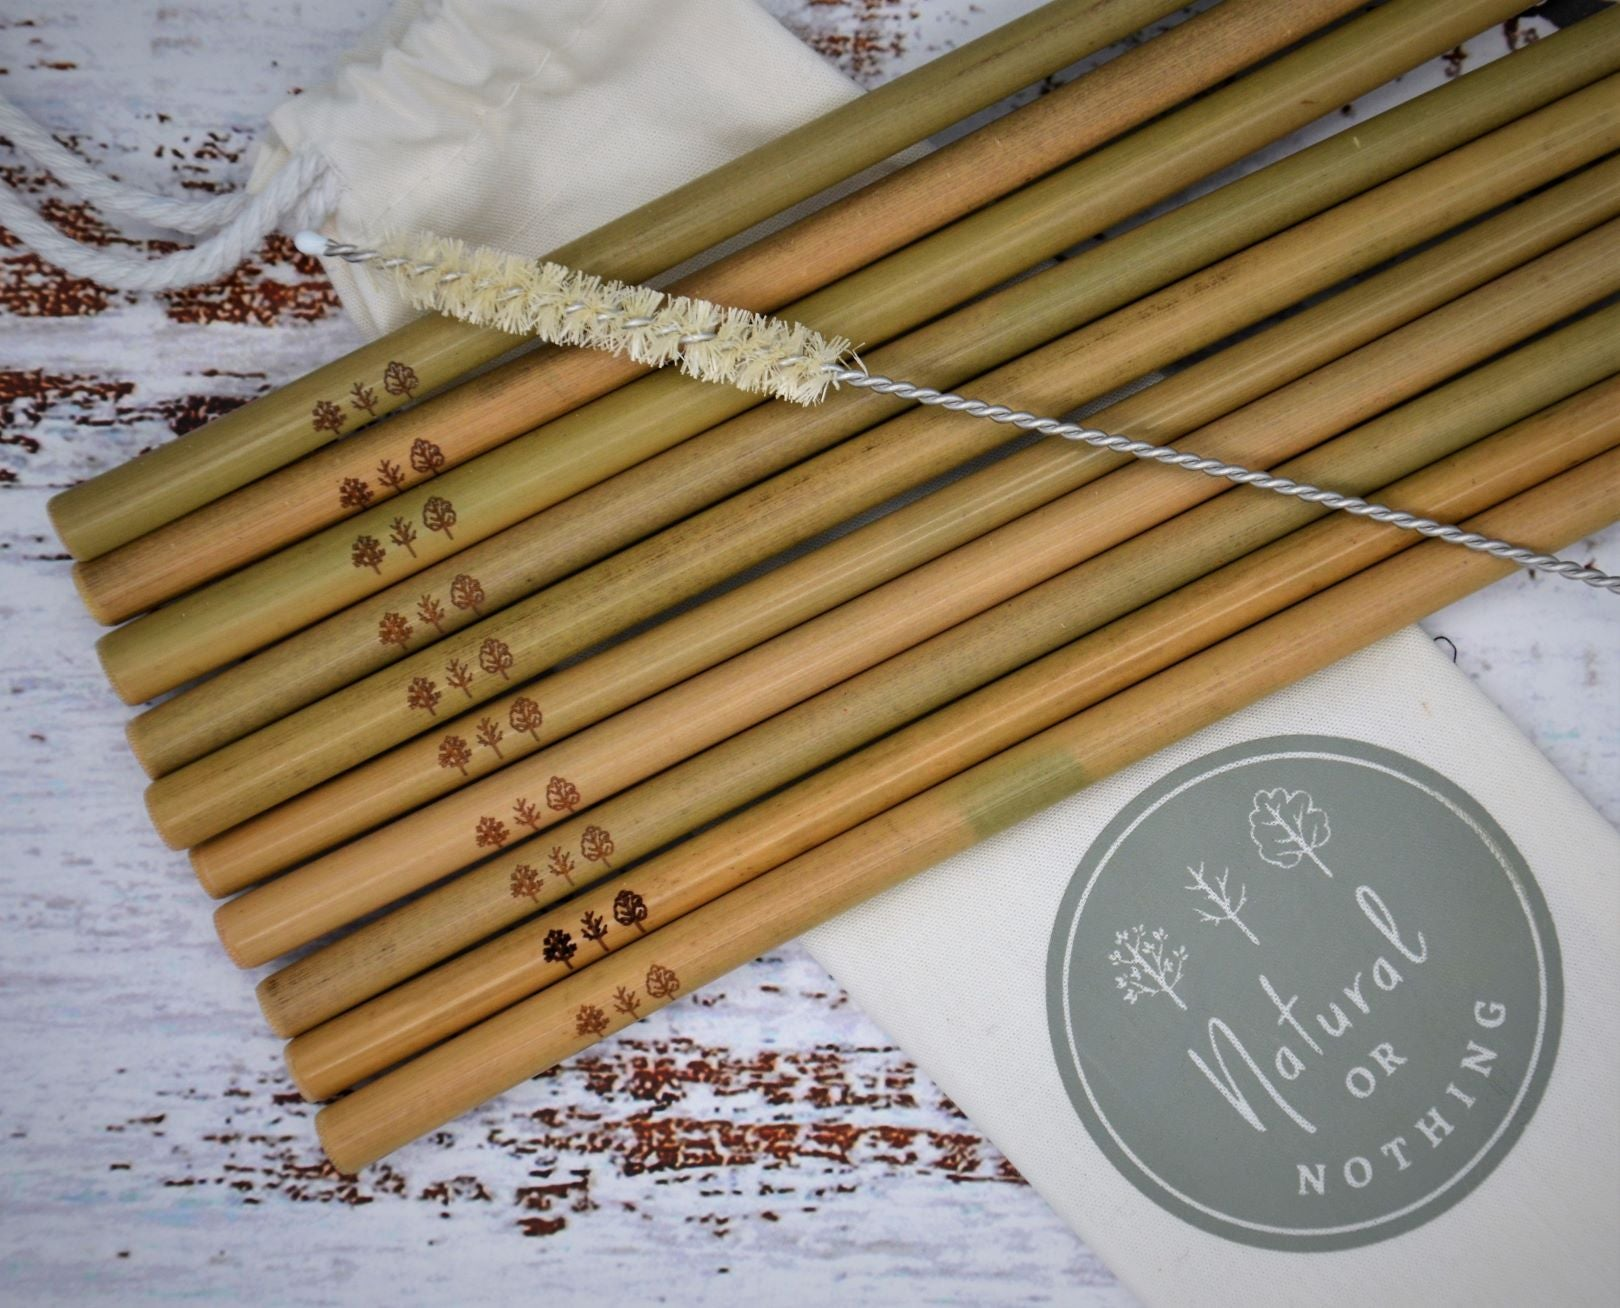 Bamboo straws up close, laid over canvas bag with sisal straw cleaner laid on top